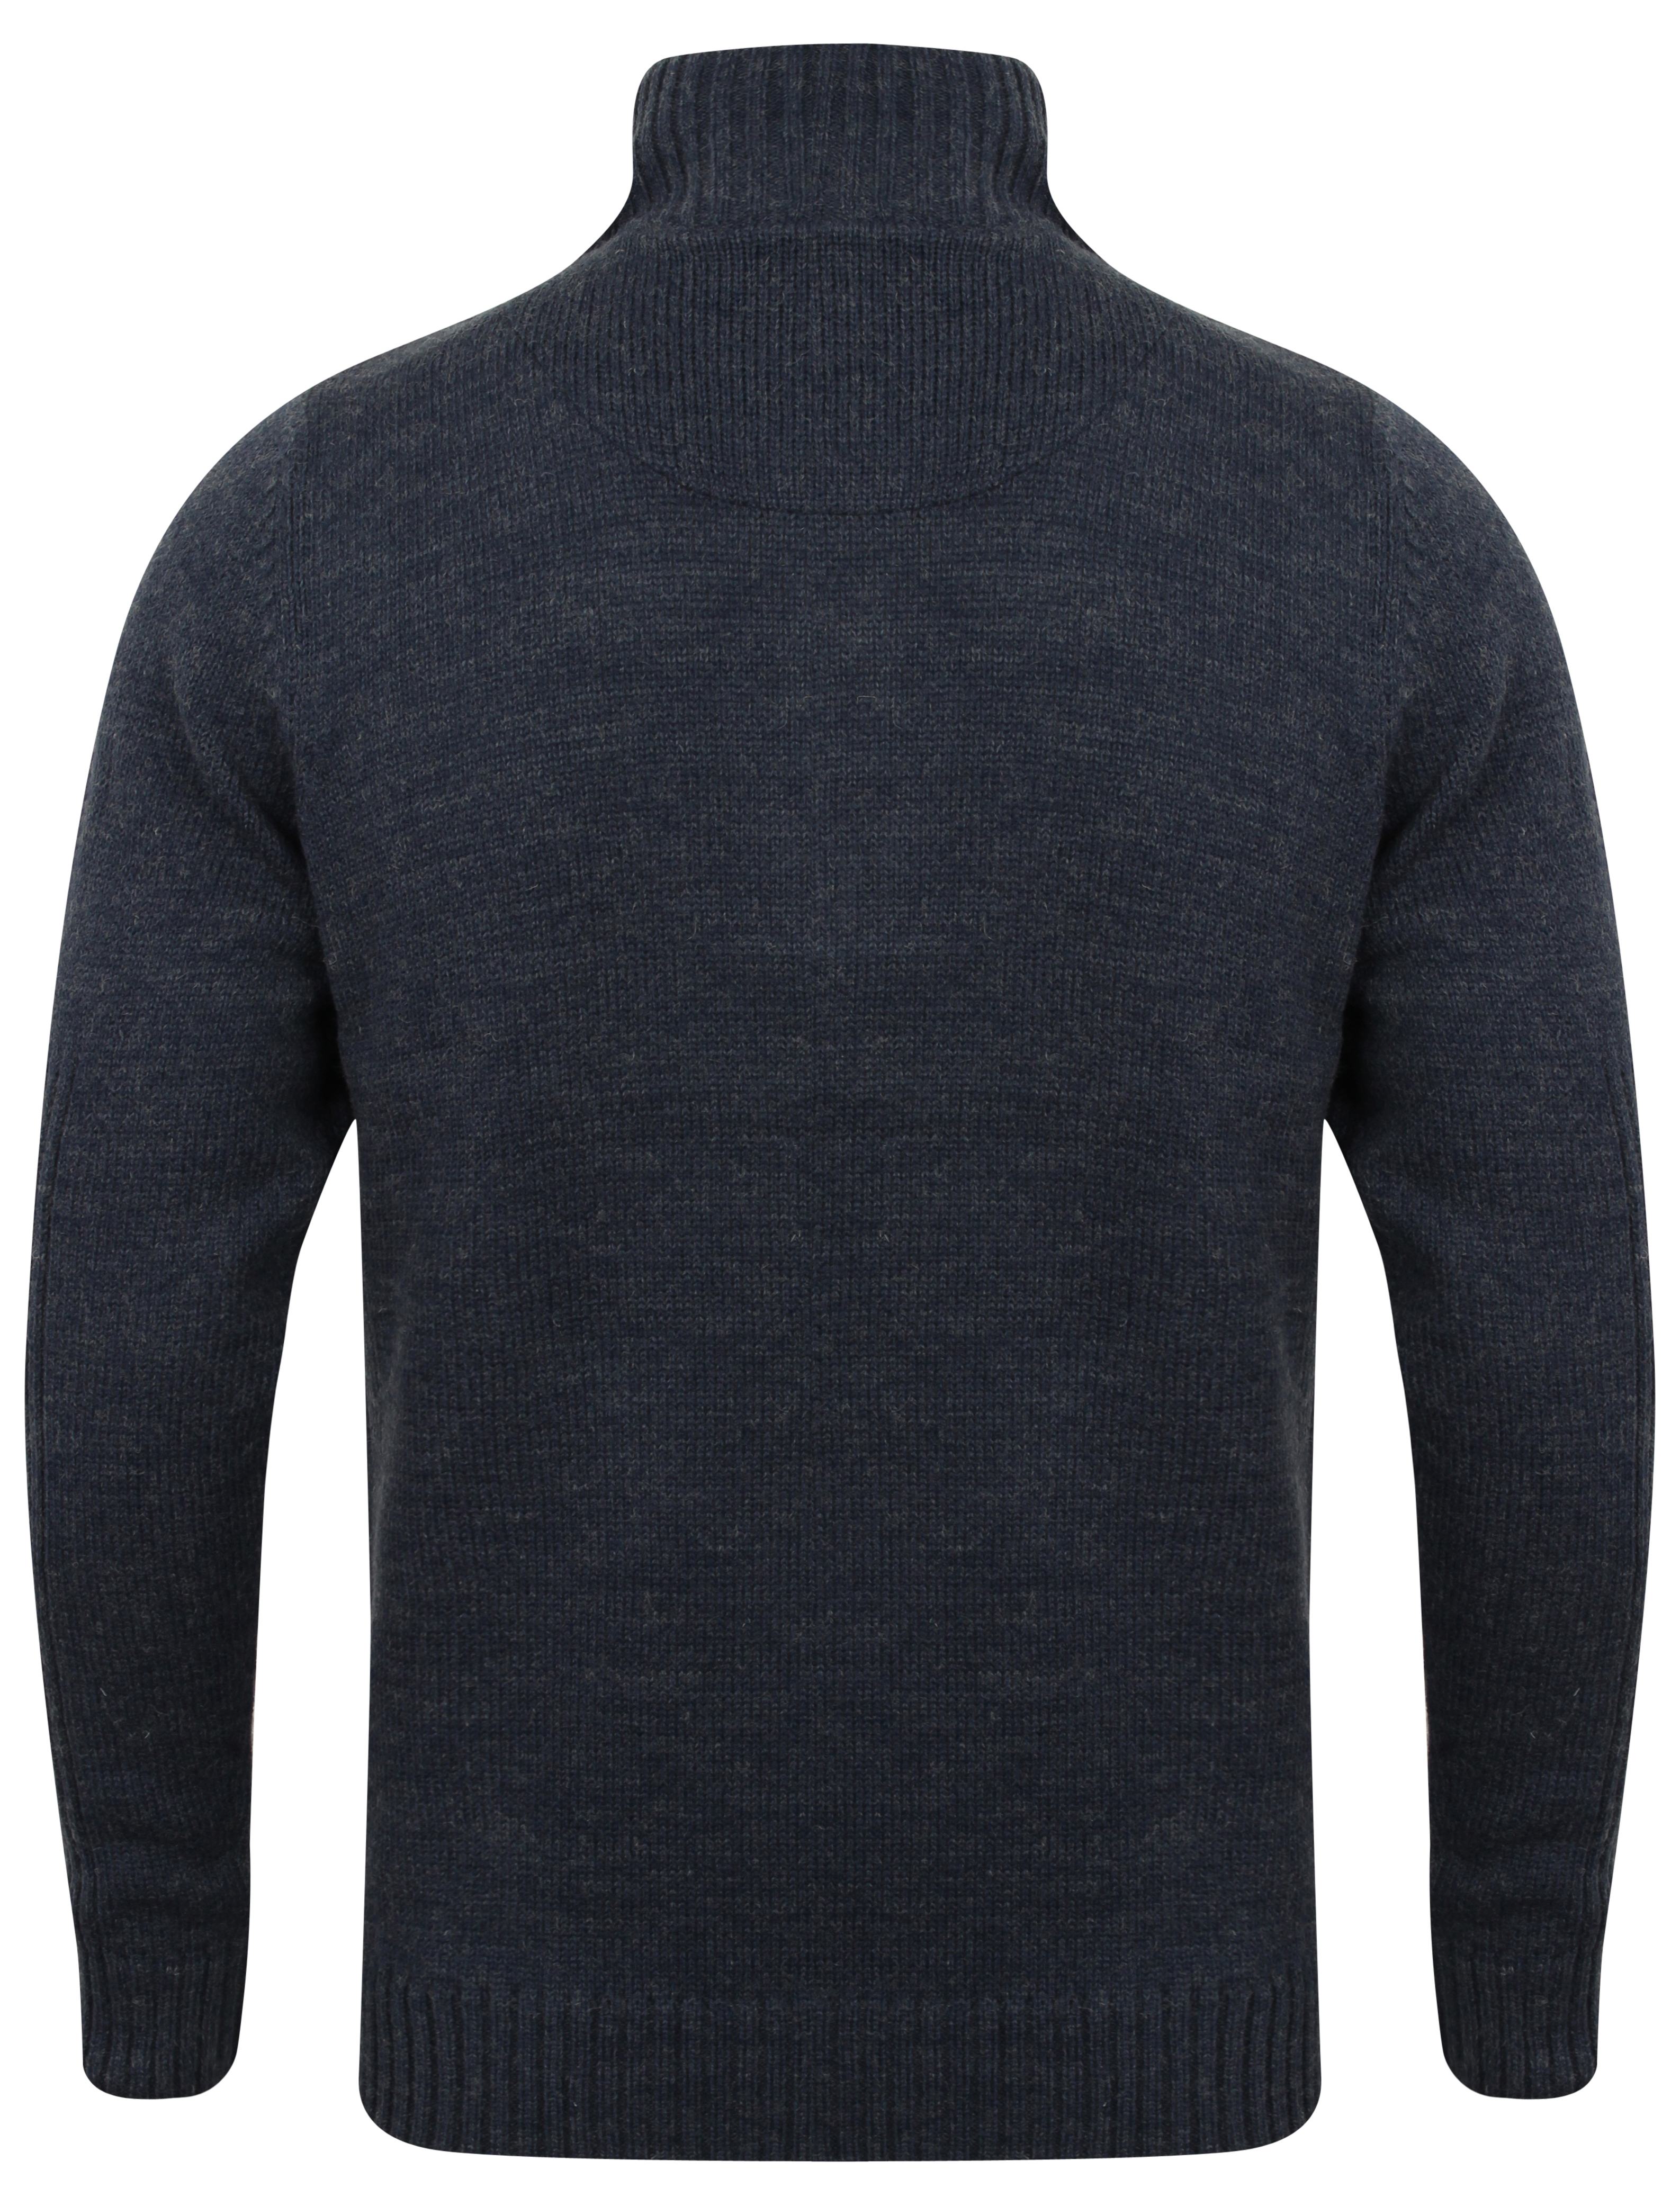 Mens-Wool-Mix-Knitted-Jumper-Dissident-Double-Layer-Funnel-Neck-Pullover-Sweater thumbnail 3